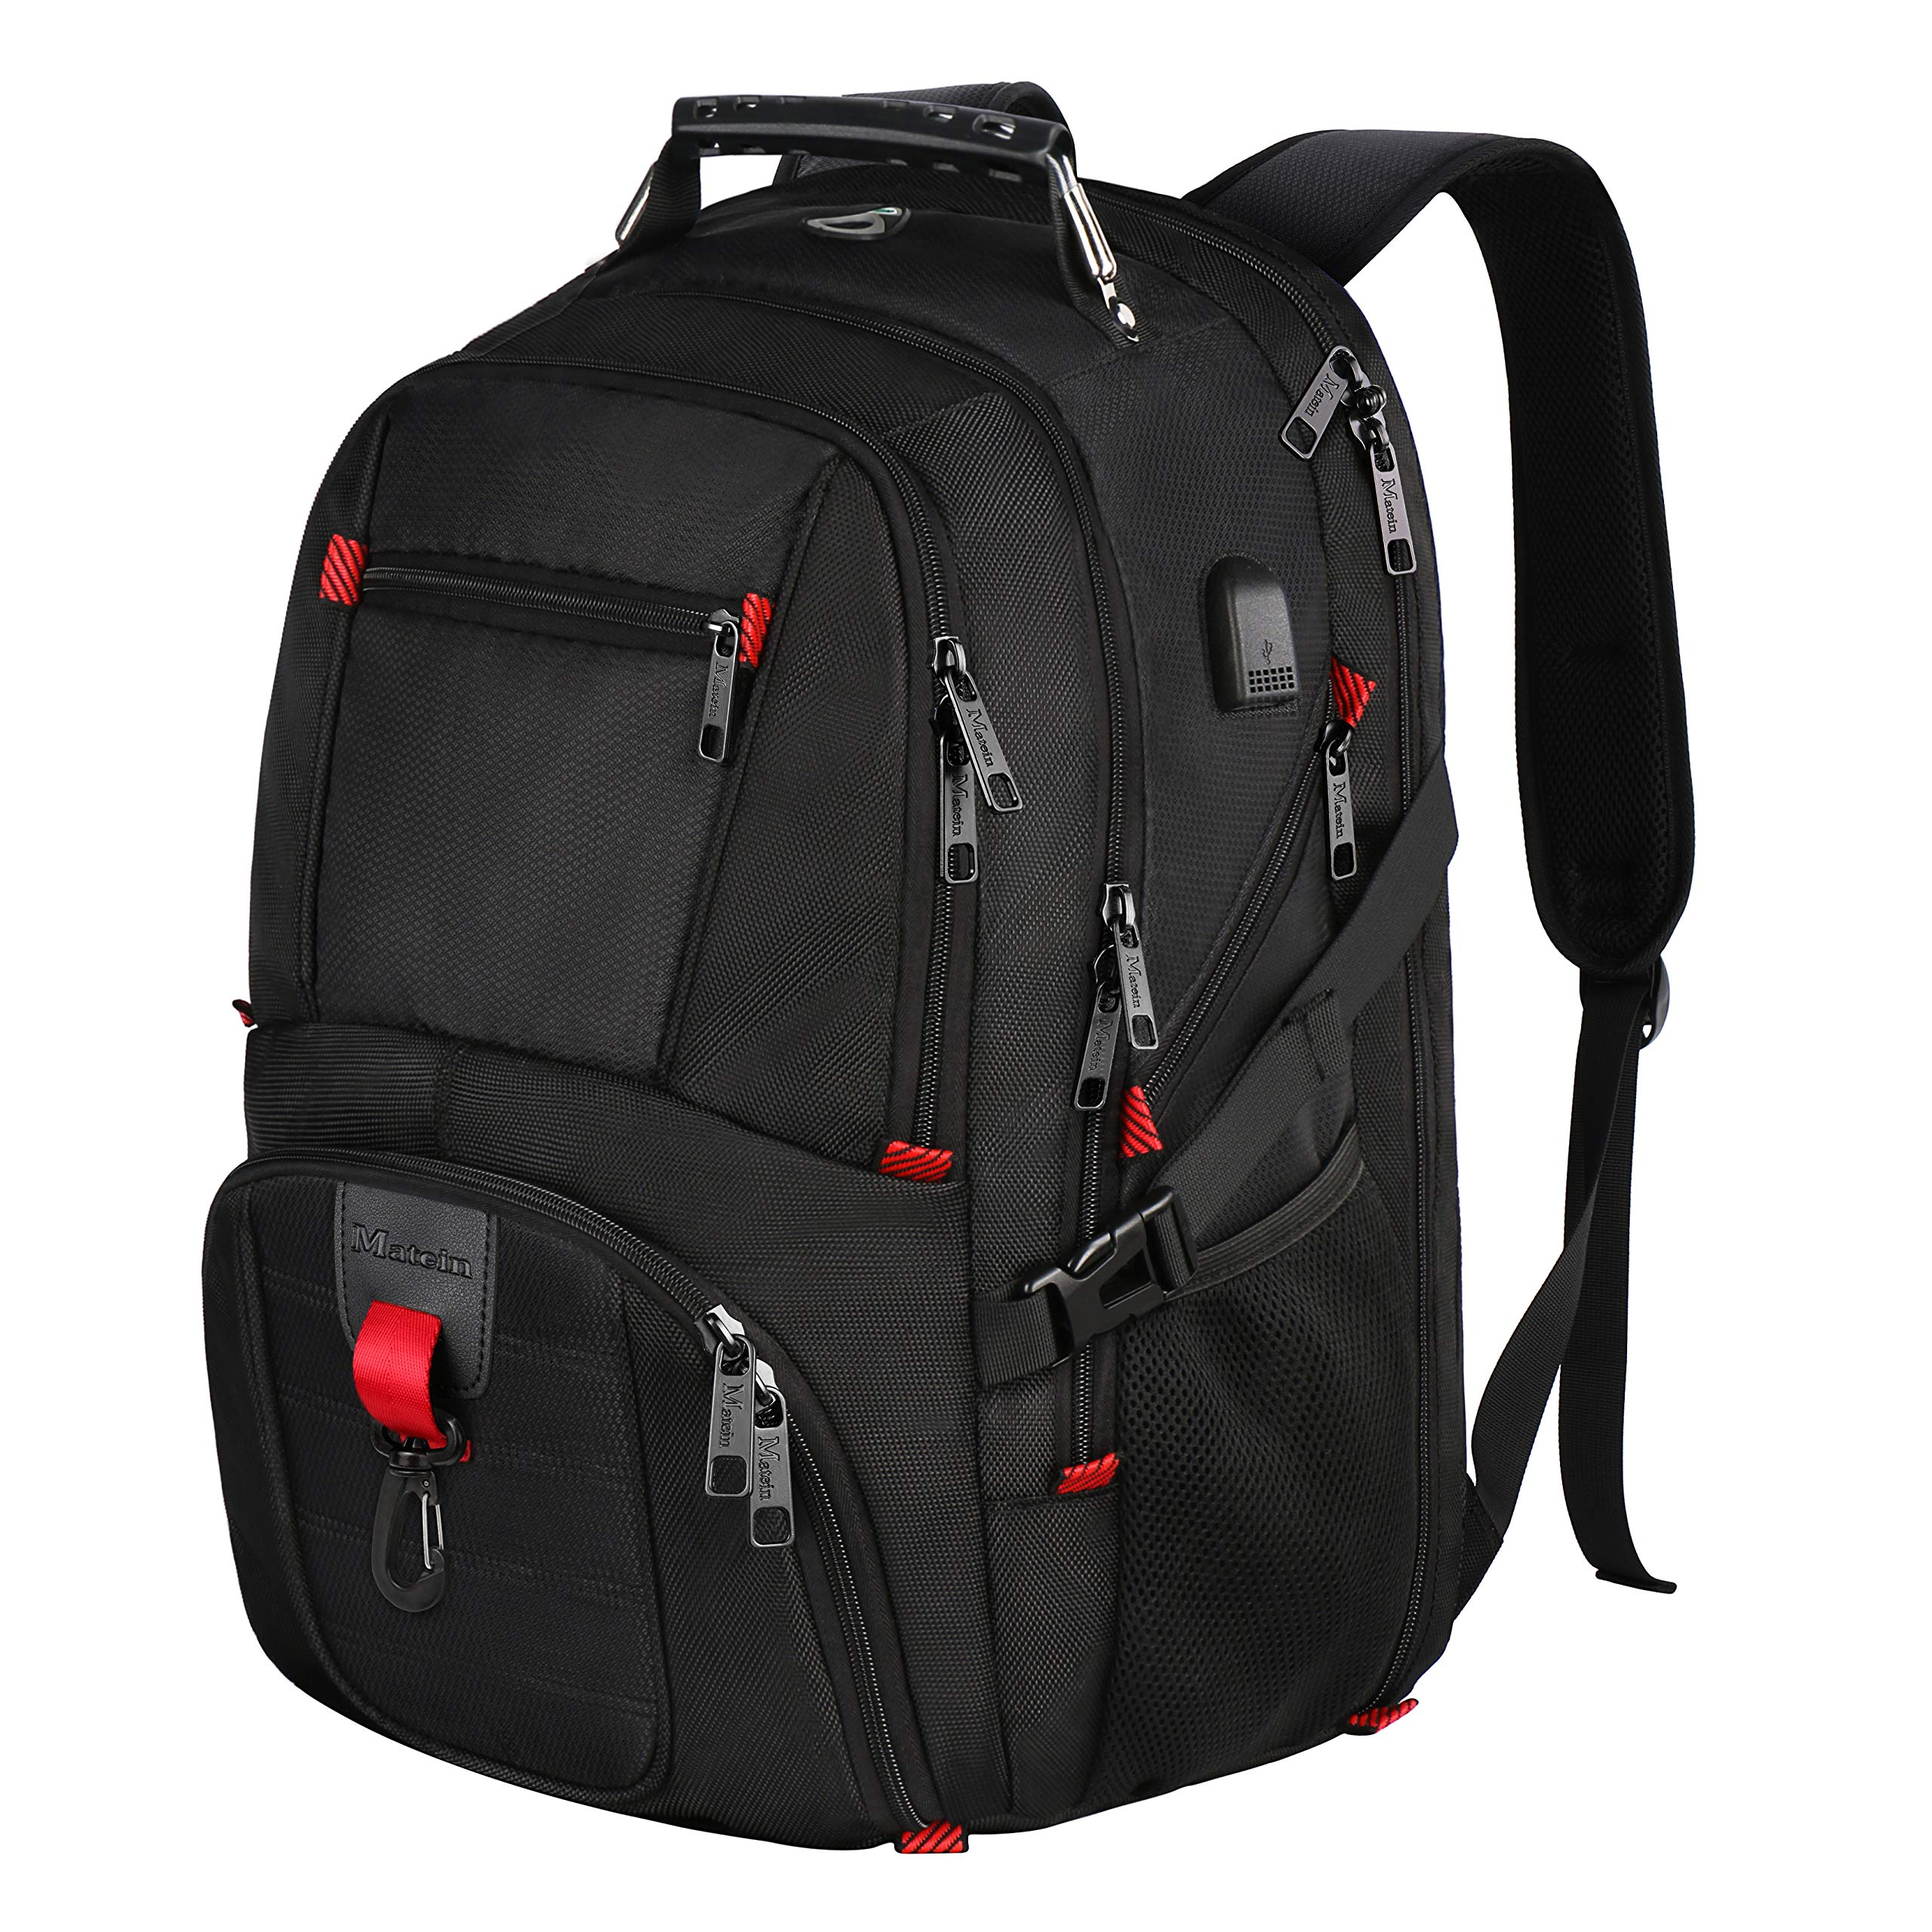 Best Rated In Business Amp Laptop Bags Amp Helpful Customer Reviews Amazon Co Uk